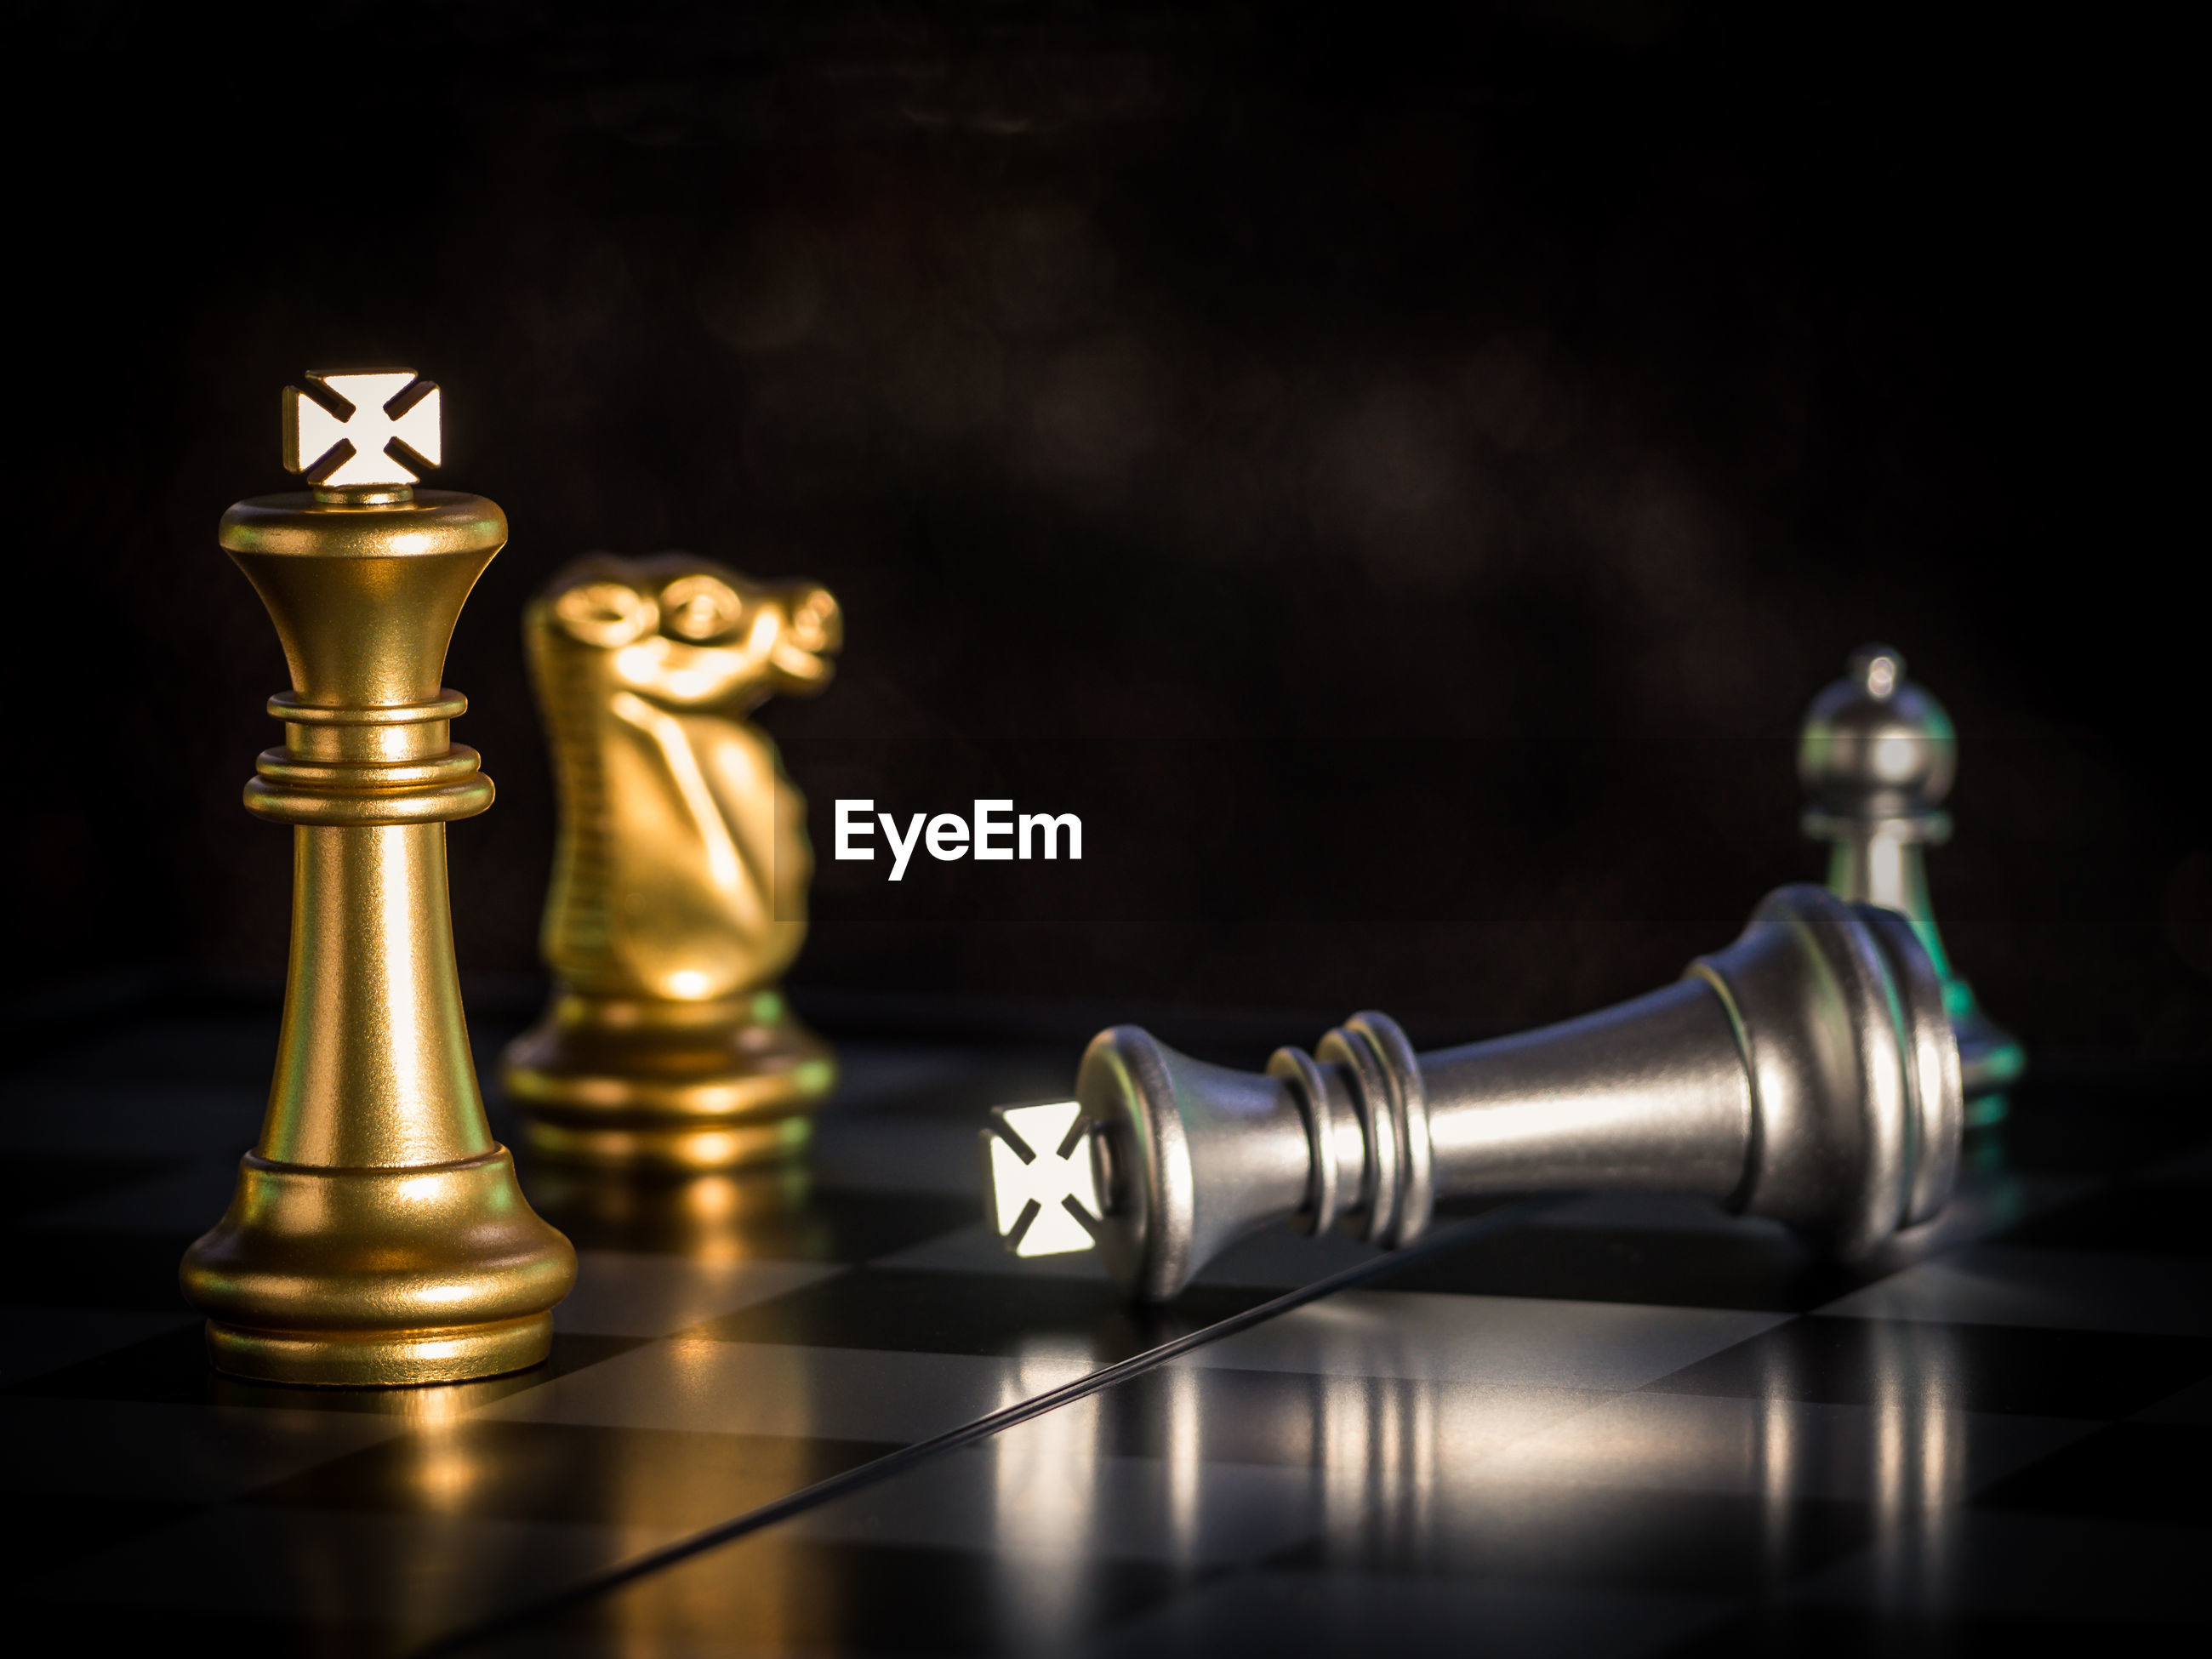 CLOSE-UP OF CHESS PIECES ON FLOOR